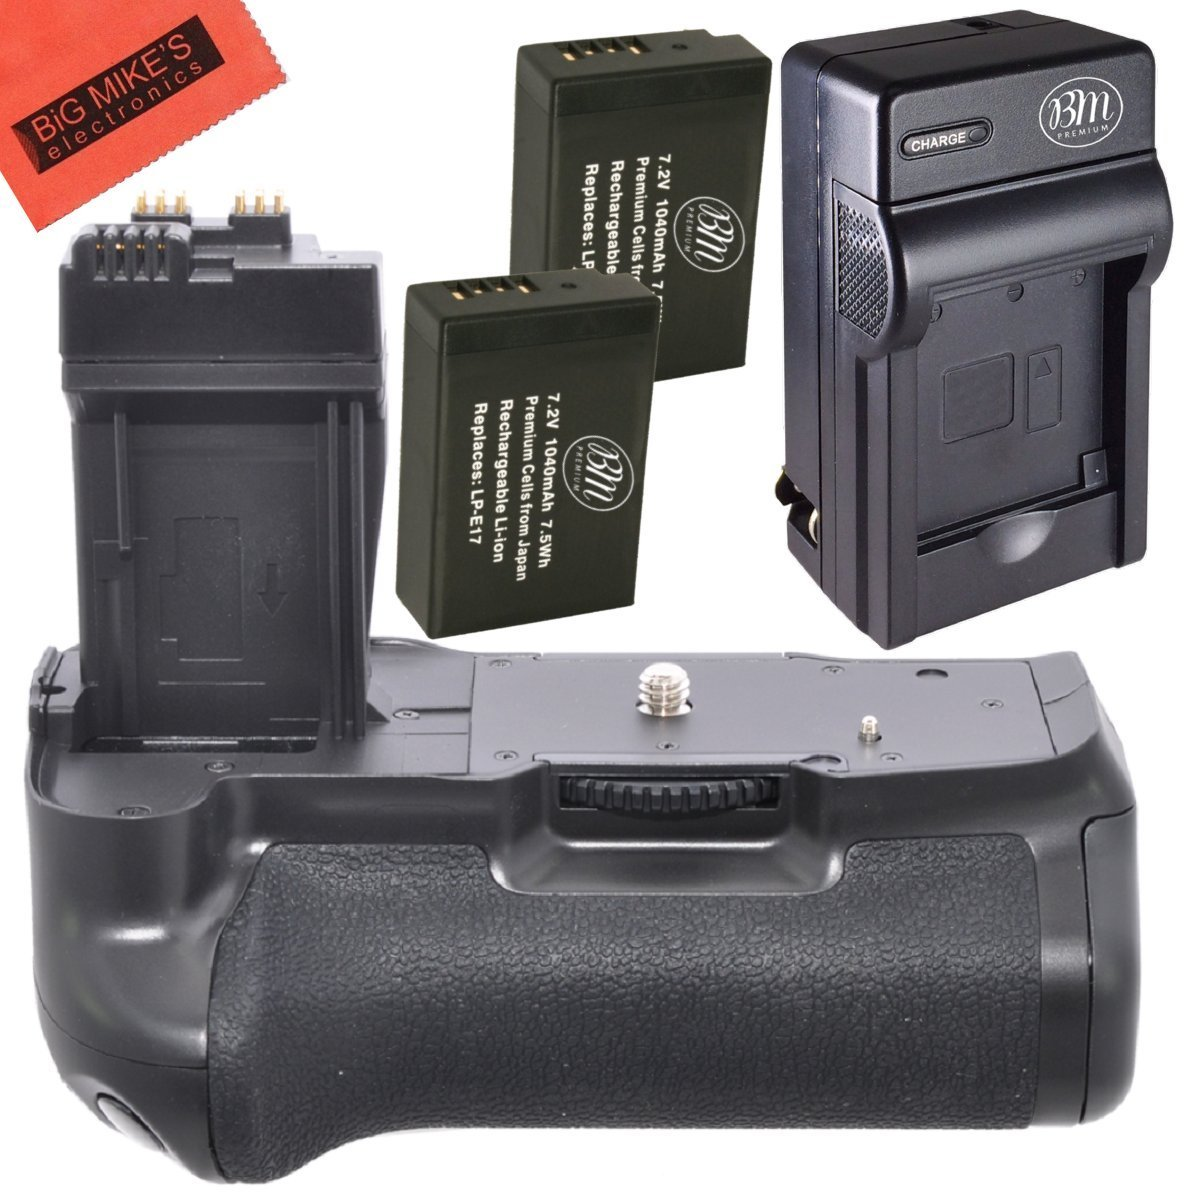 Battery Grip Kit for Canon EOS 1100D, EOS Rebel T6i, Rebel T6s, EOS 750D, EOS 760D, EOS 8000D, KISS X8i Digital SLR (BG-E18 Replacement) - Includes Battery Grip + 2 LP-E17 Batteries + Battery Charger